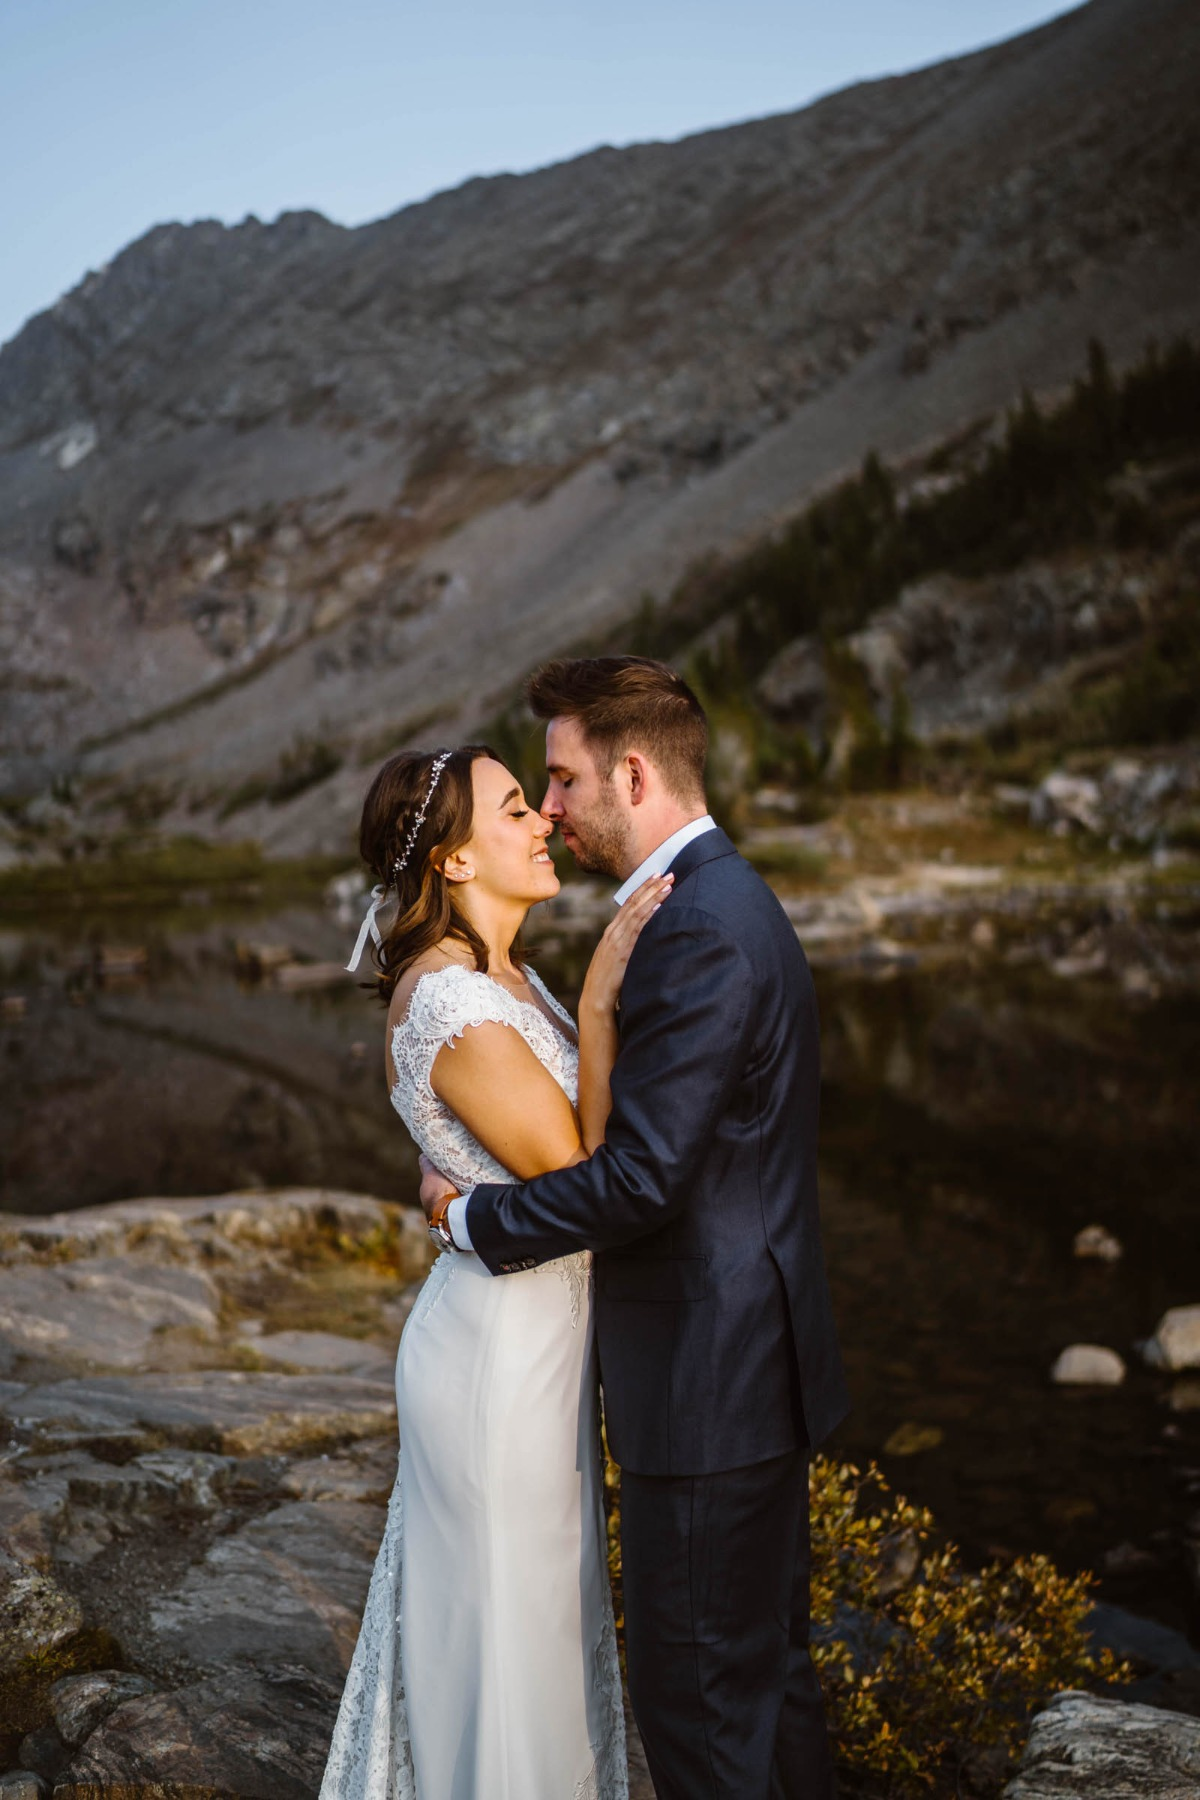 A Small Family Elopement in the Woods